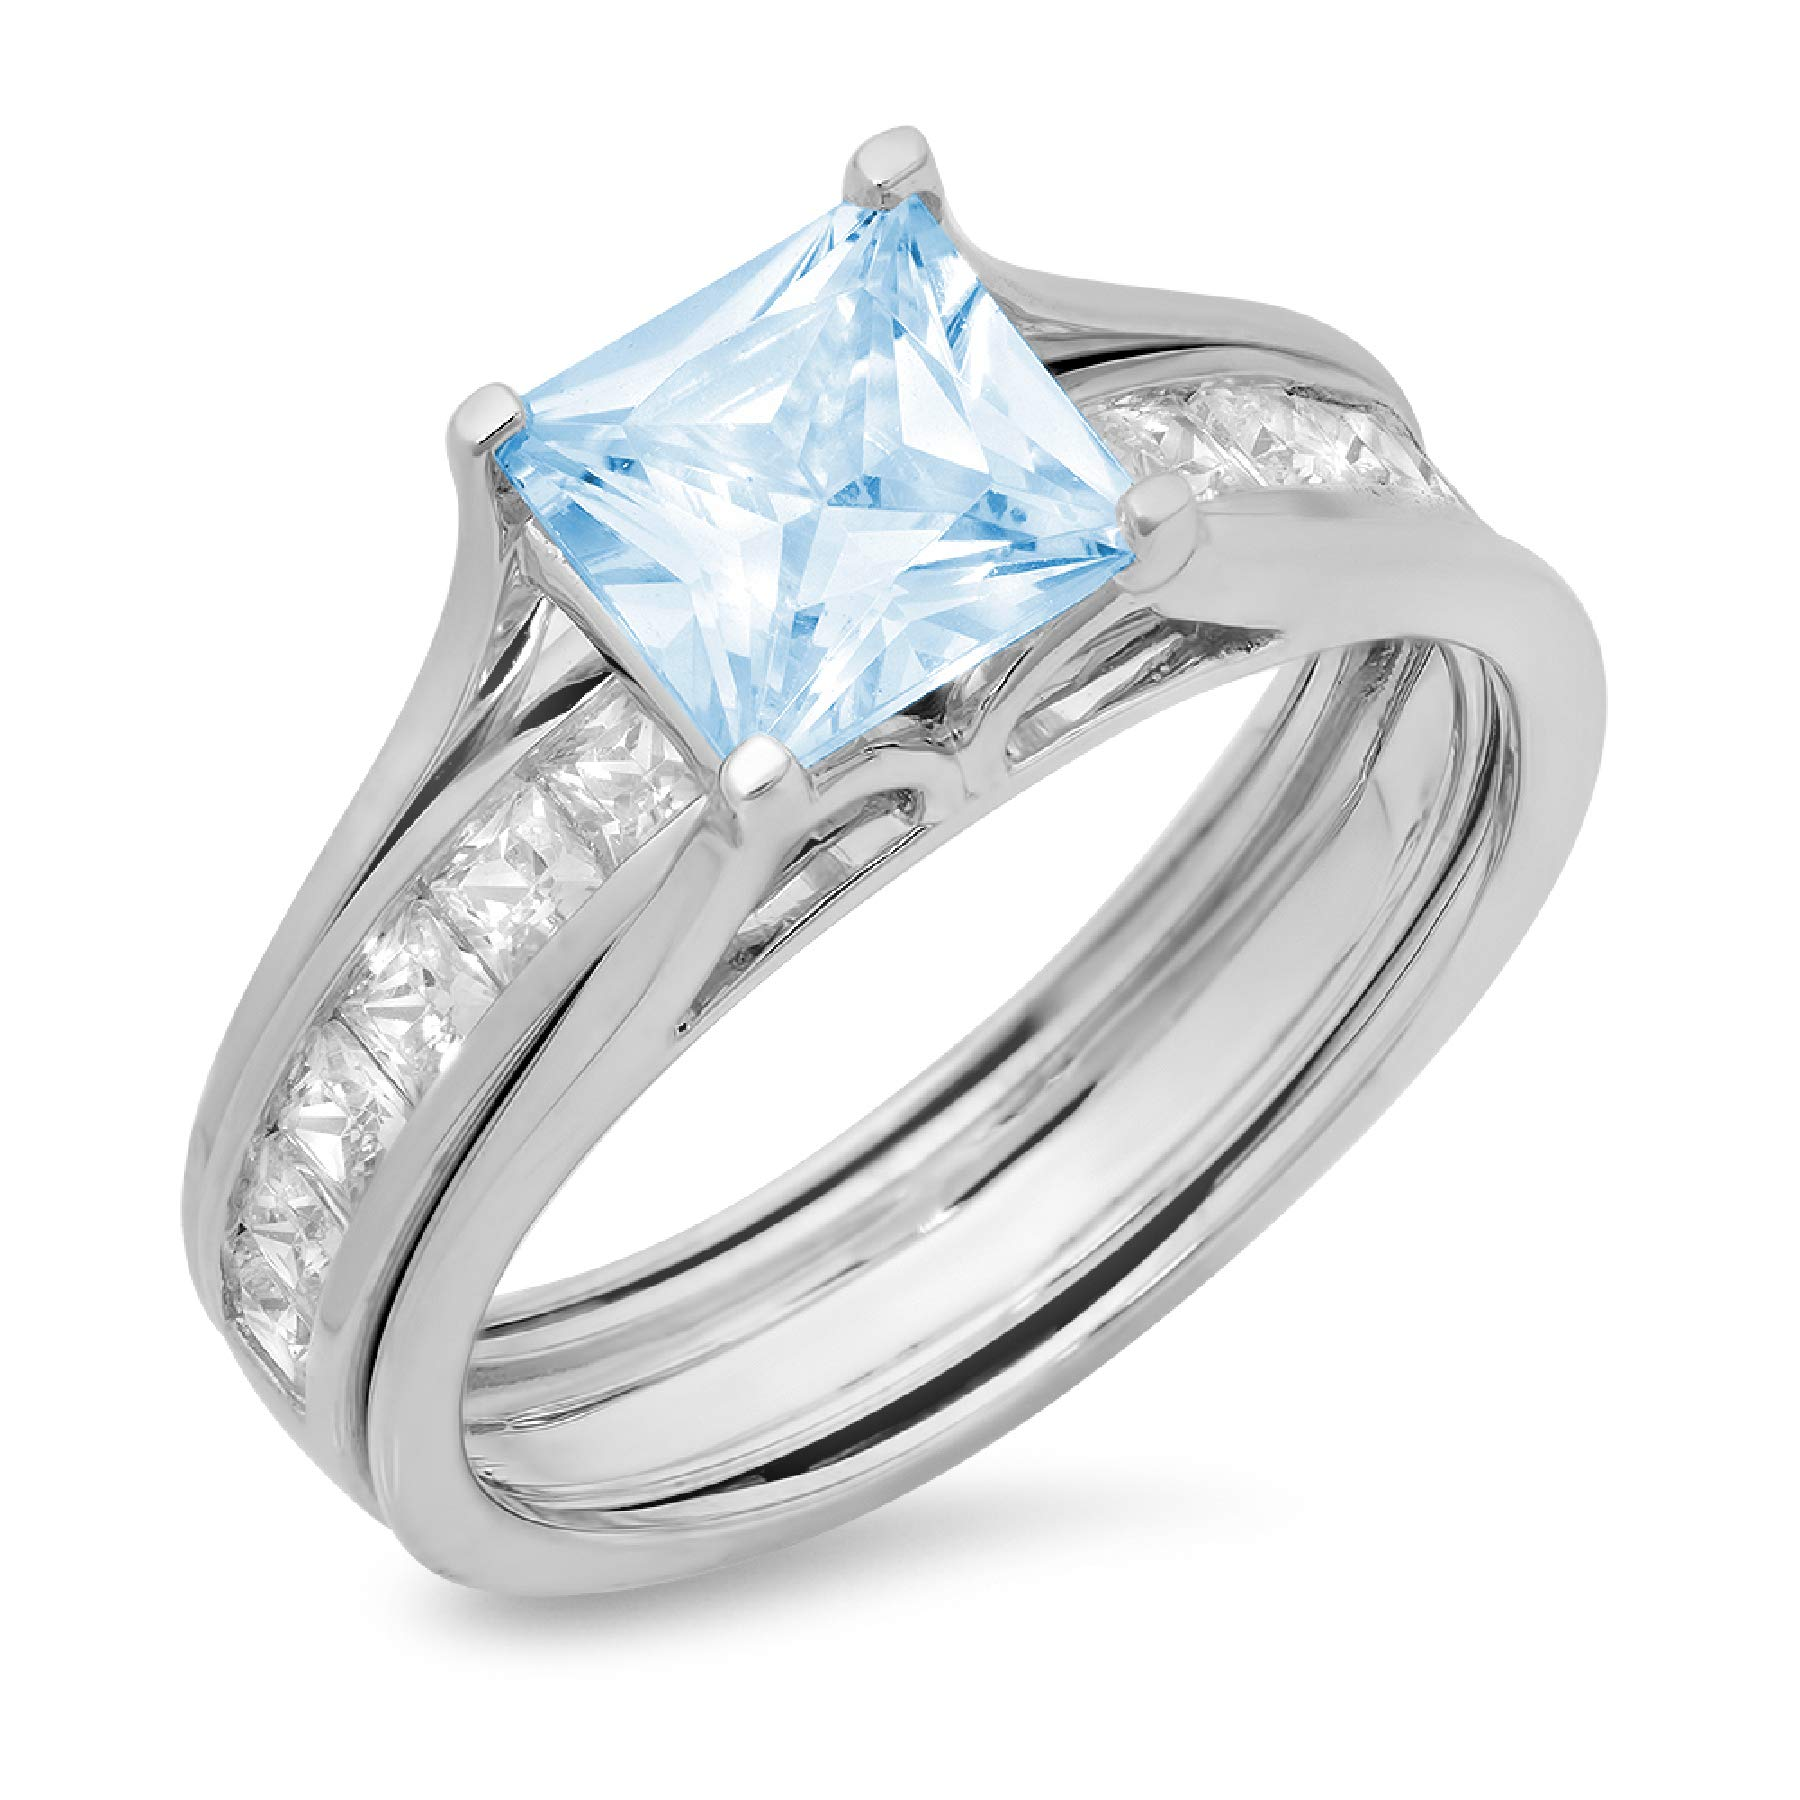 3.37ct Princess Cut Pave Solitaire with Accent Aquamarine Blue Simulated Diamond Designer Statement Classic Sliding Ring Band Set Real 14k White Gold Sz 7 by Clara Pucci